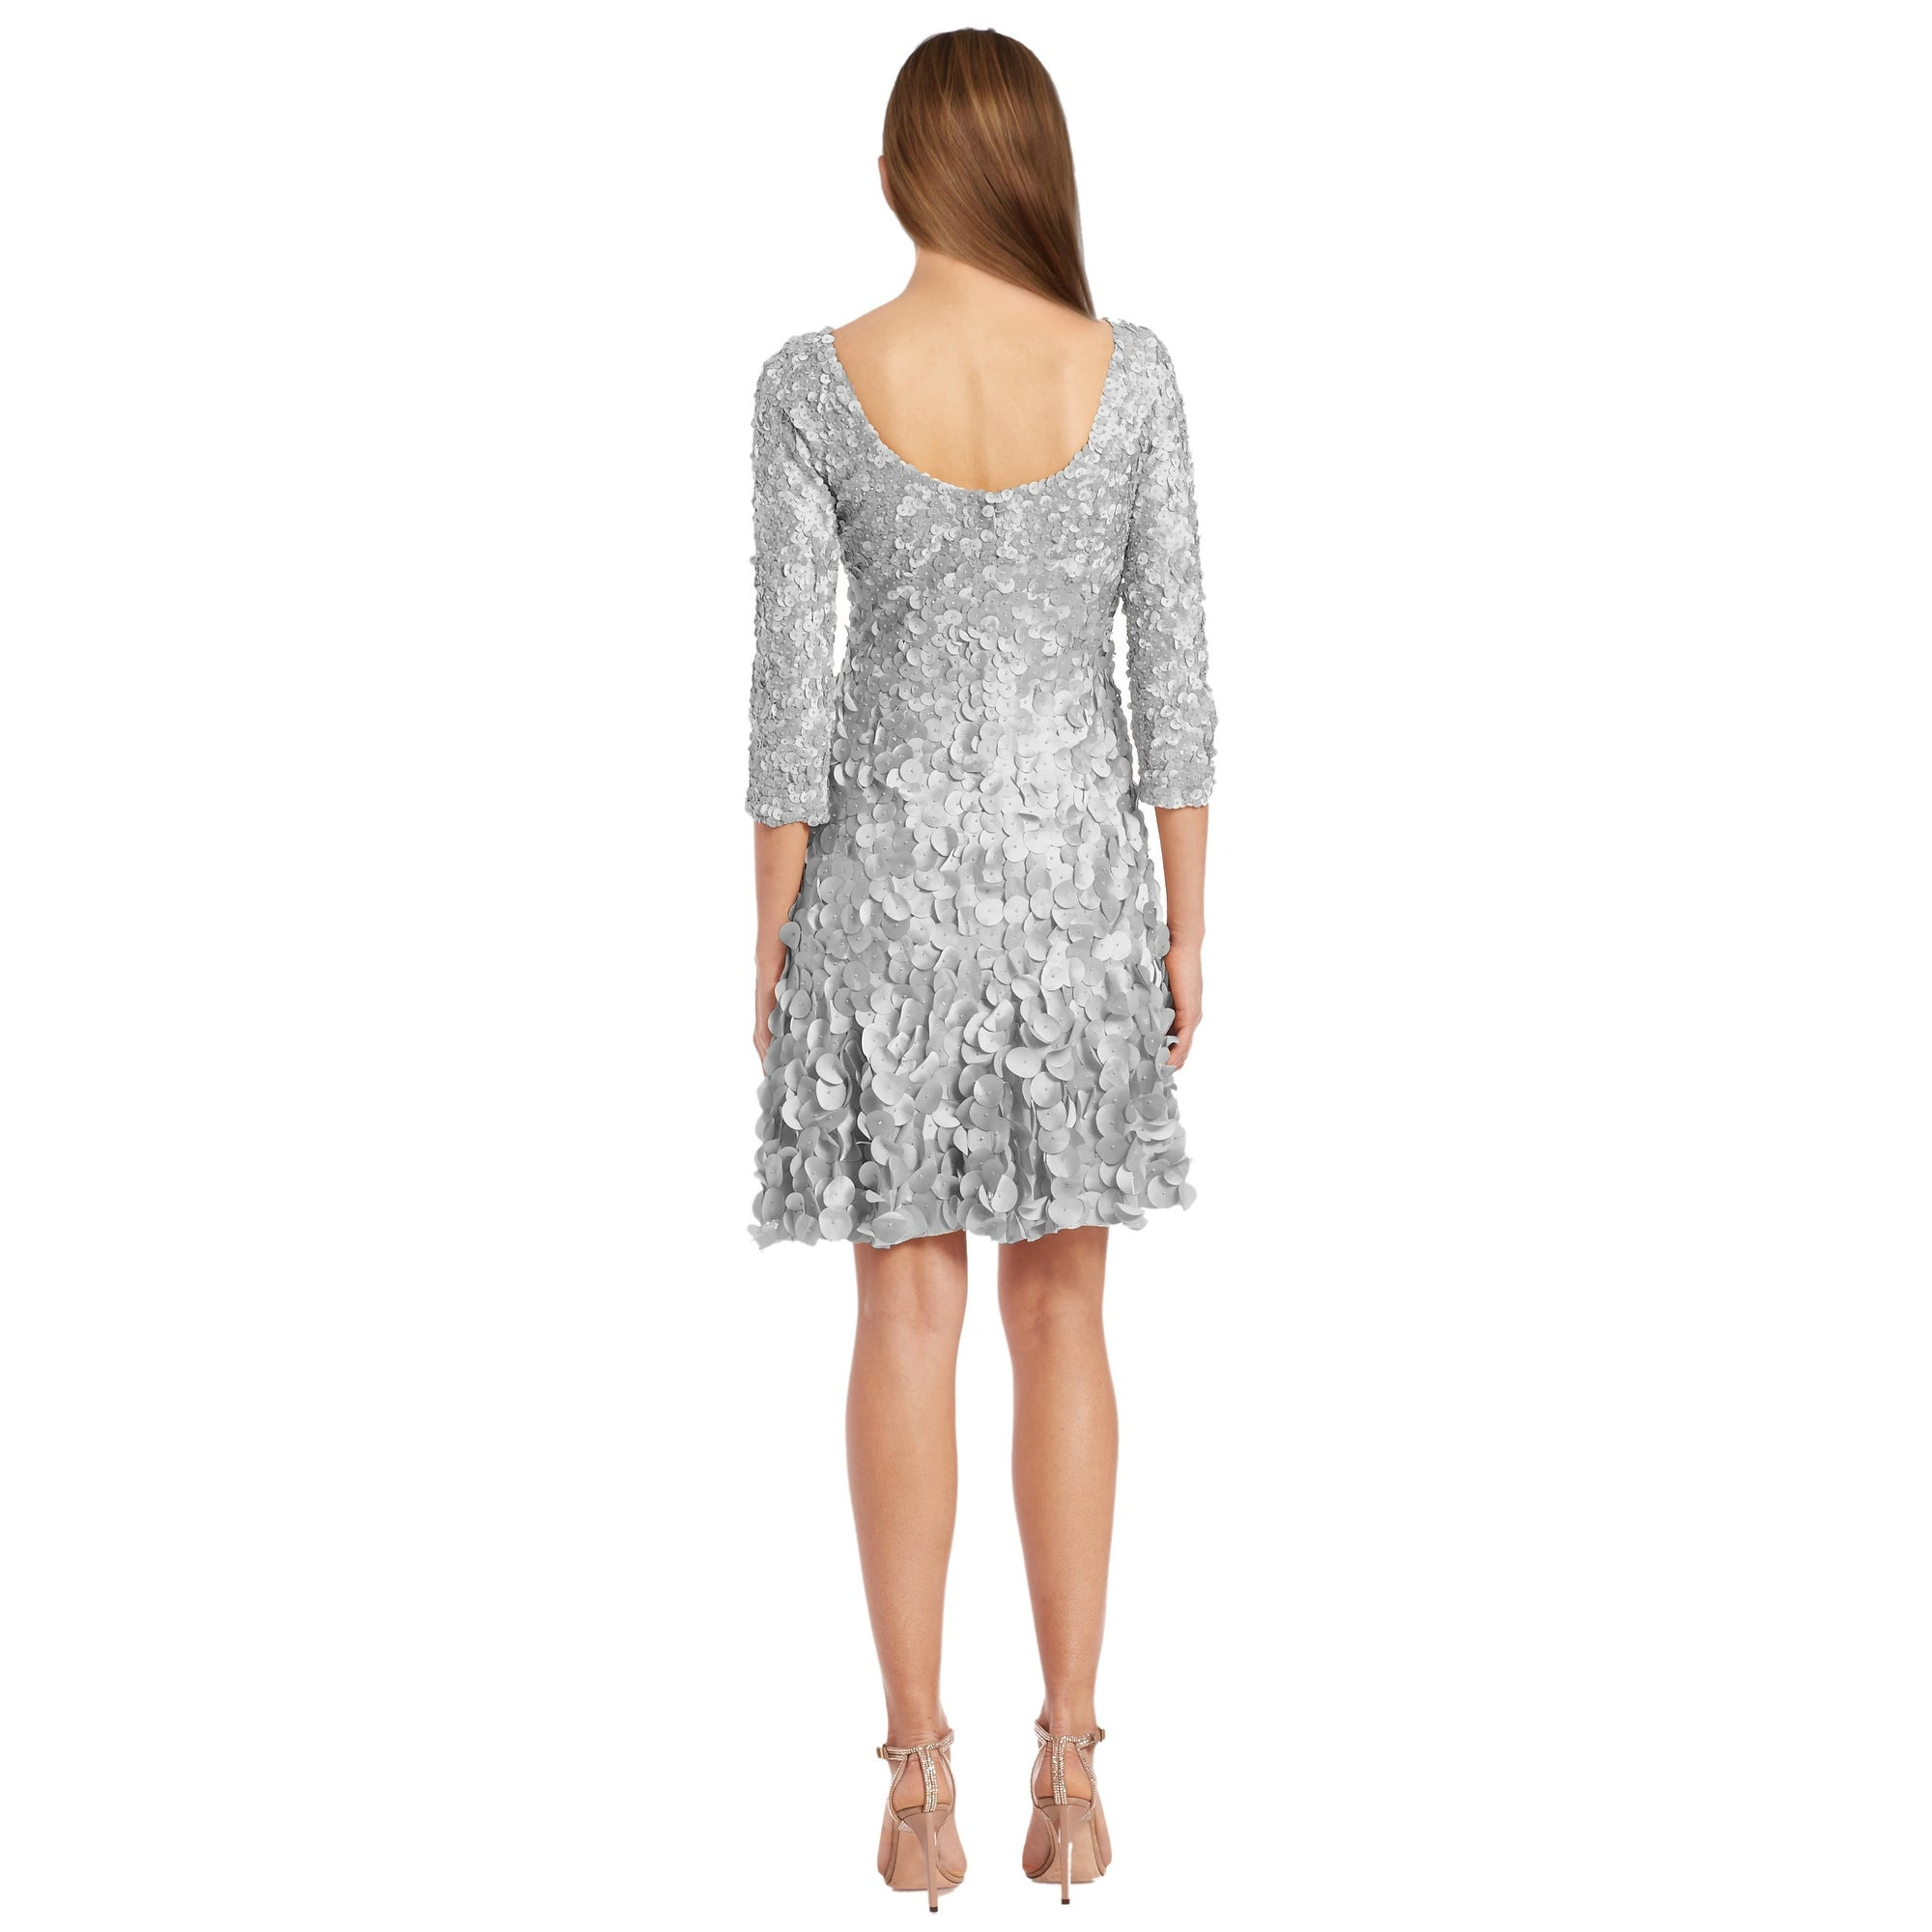 bf47f6c2930 Shop Theia Metallic Petal Applique 3 4 Sleeve Cocktail Evening Dress - Free  Shipping Today - Overstock - 16001073